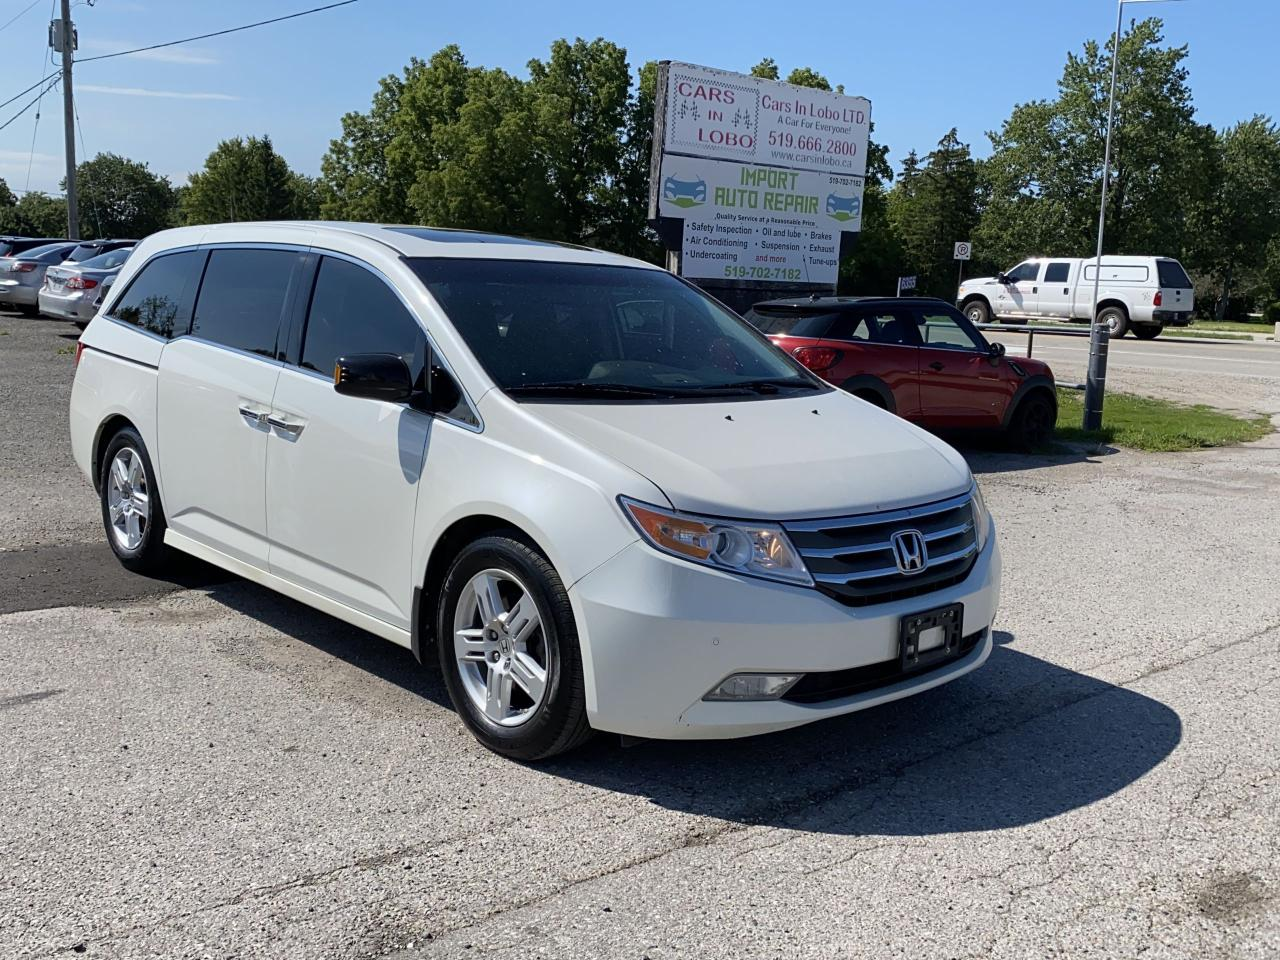 used 2012 honda odyssey touring for sale in komoka, ontario carpages.ca